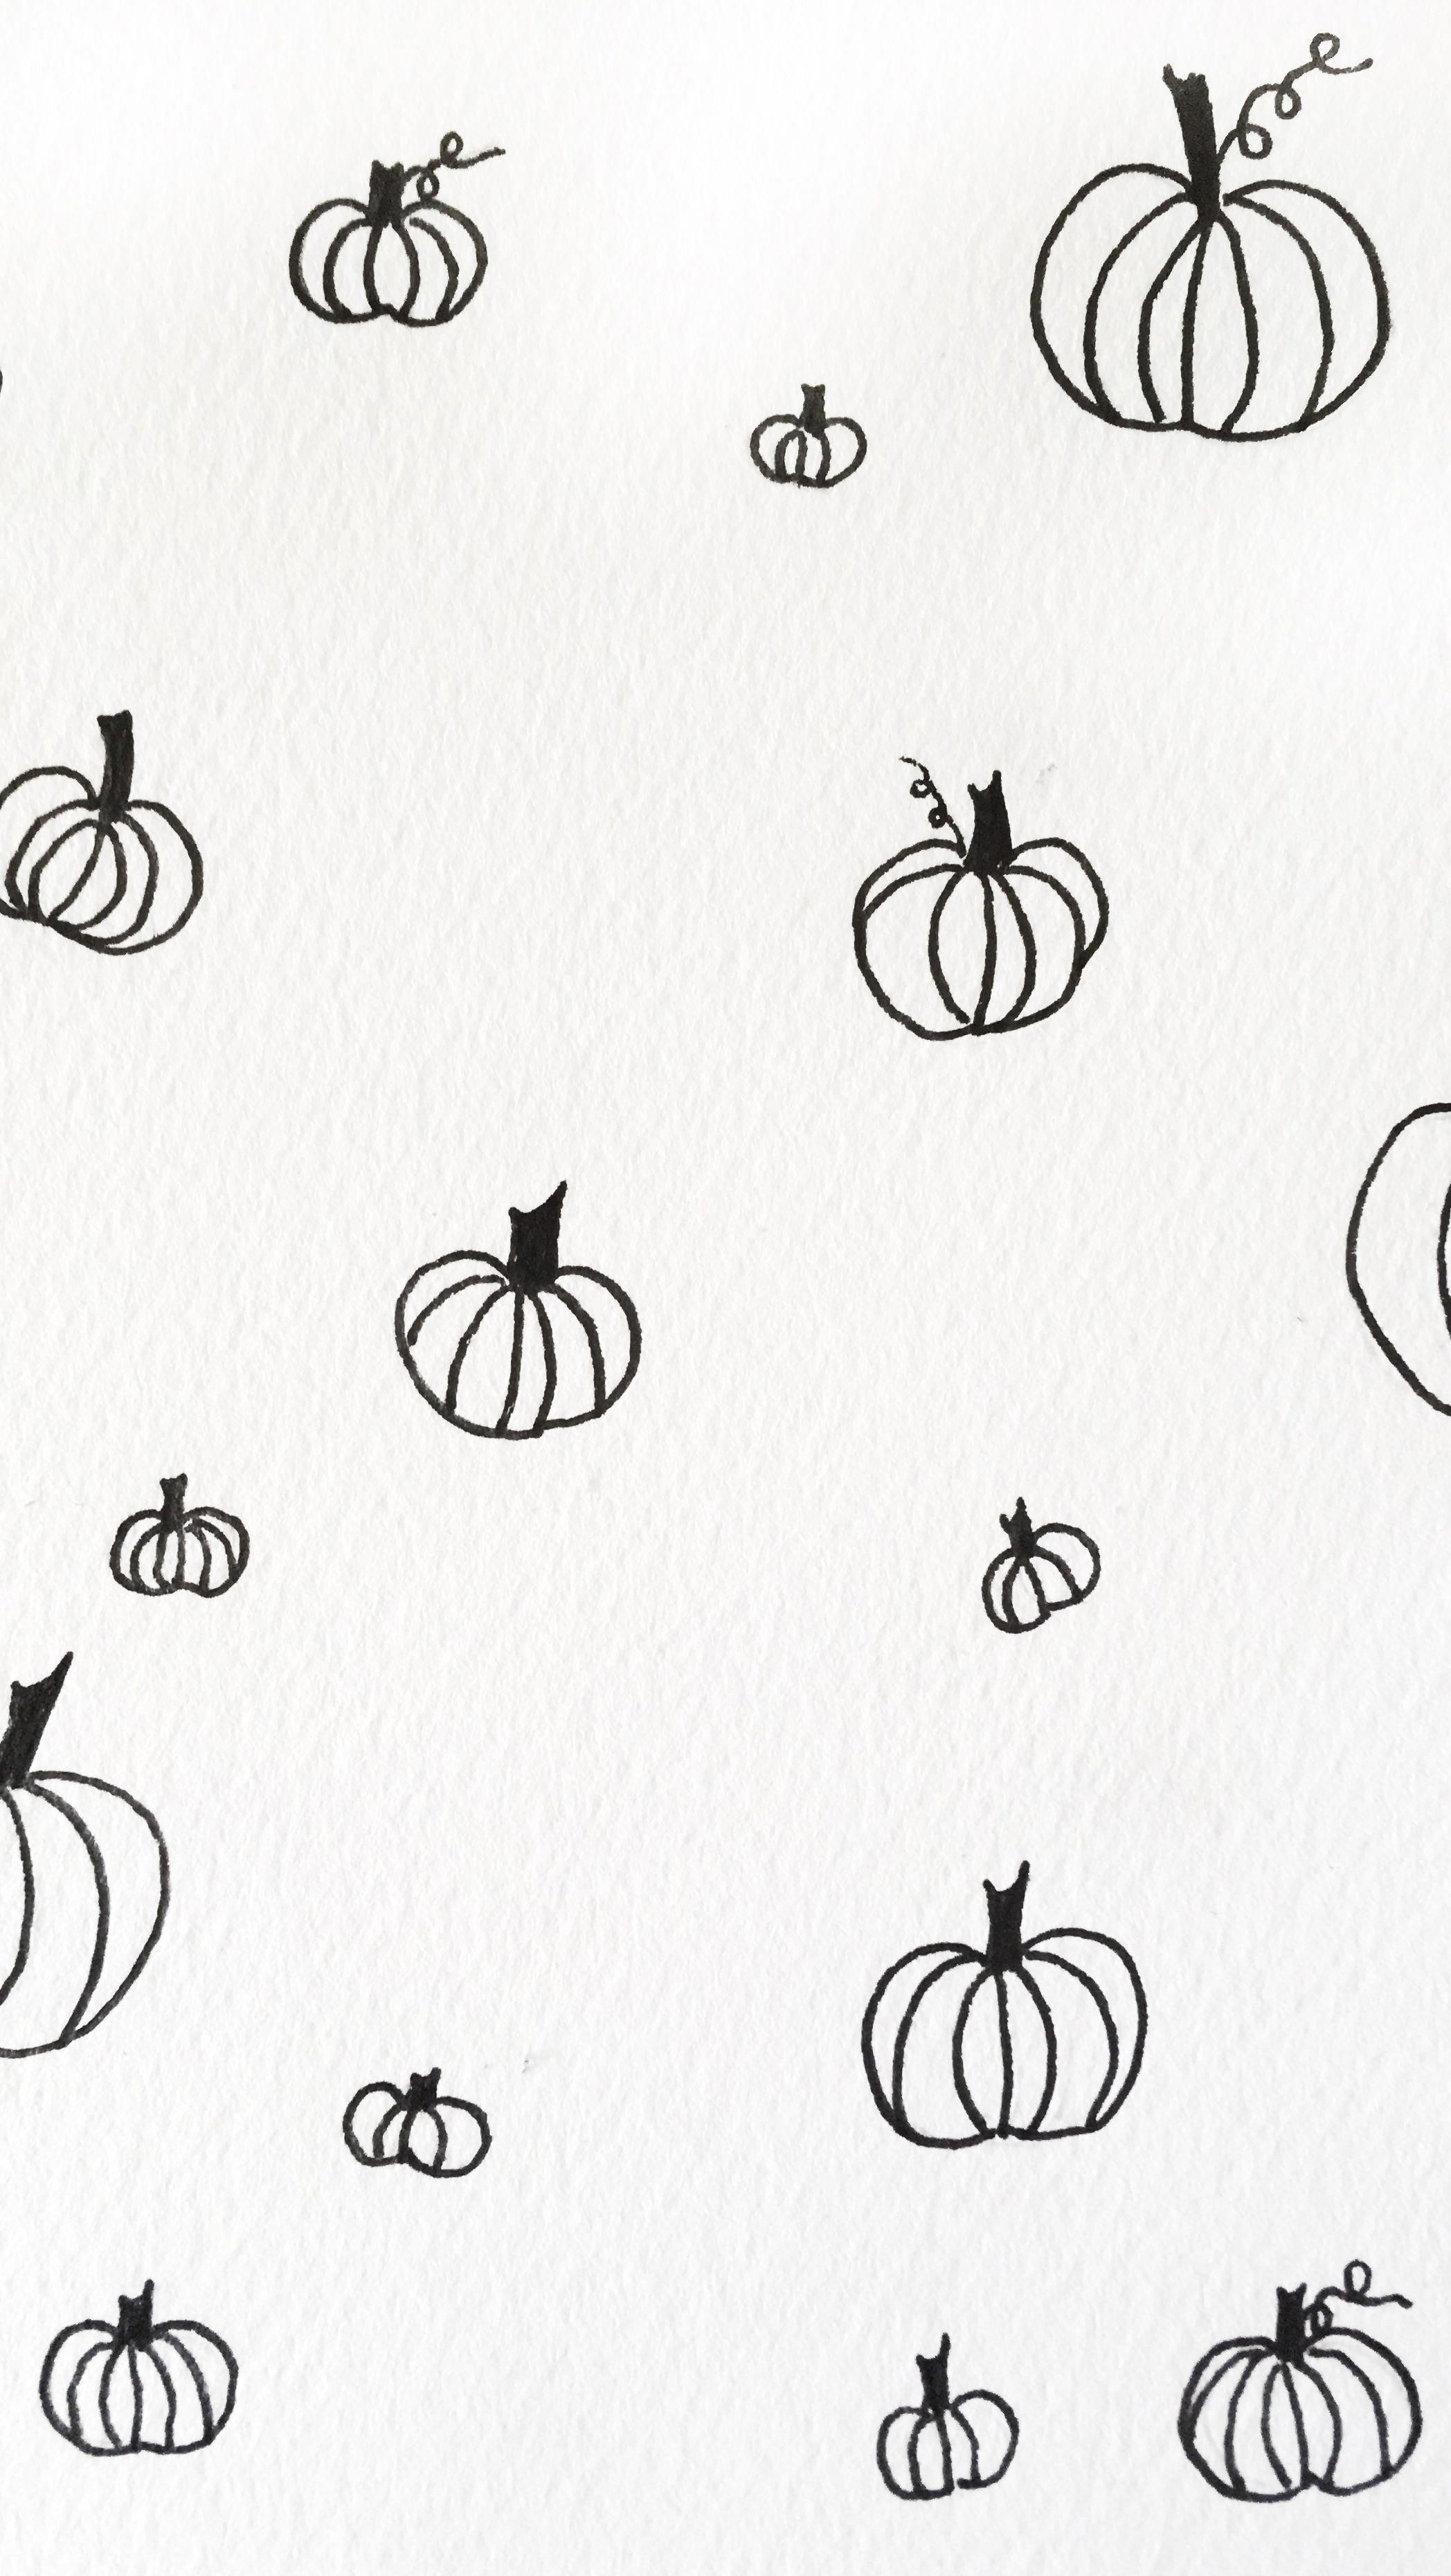 Black And White Pumpkin Iphone Watercolor Wallpaper Iphonewallpaperfall Watercolor Wallpaper Iphone Fall Wallpaper Pumpkin Wallpaper